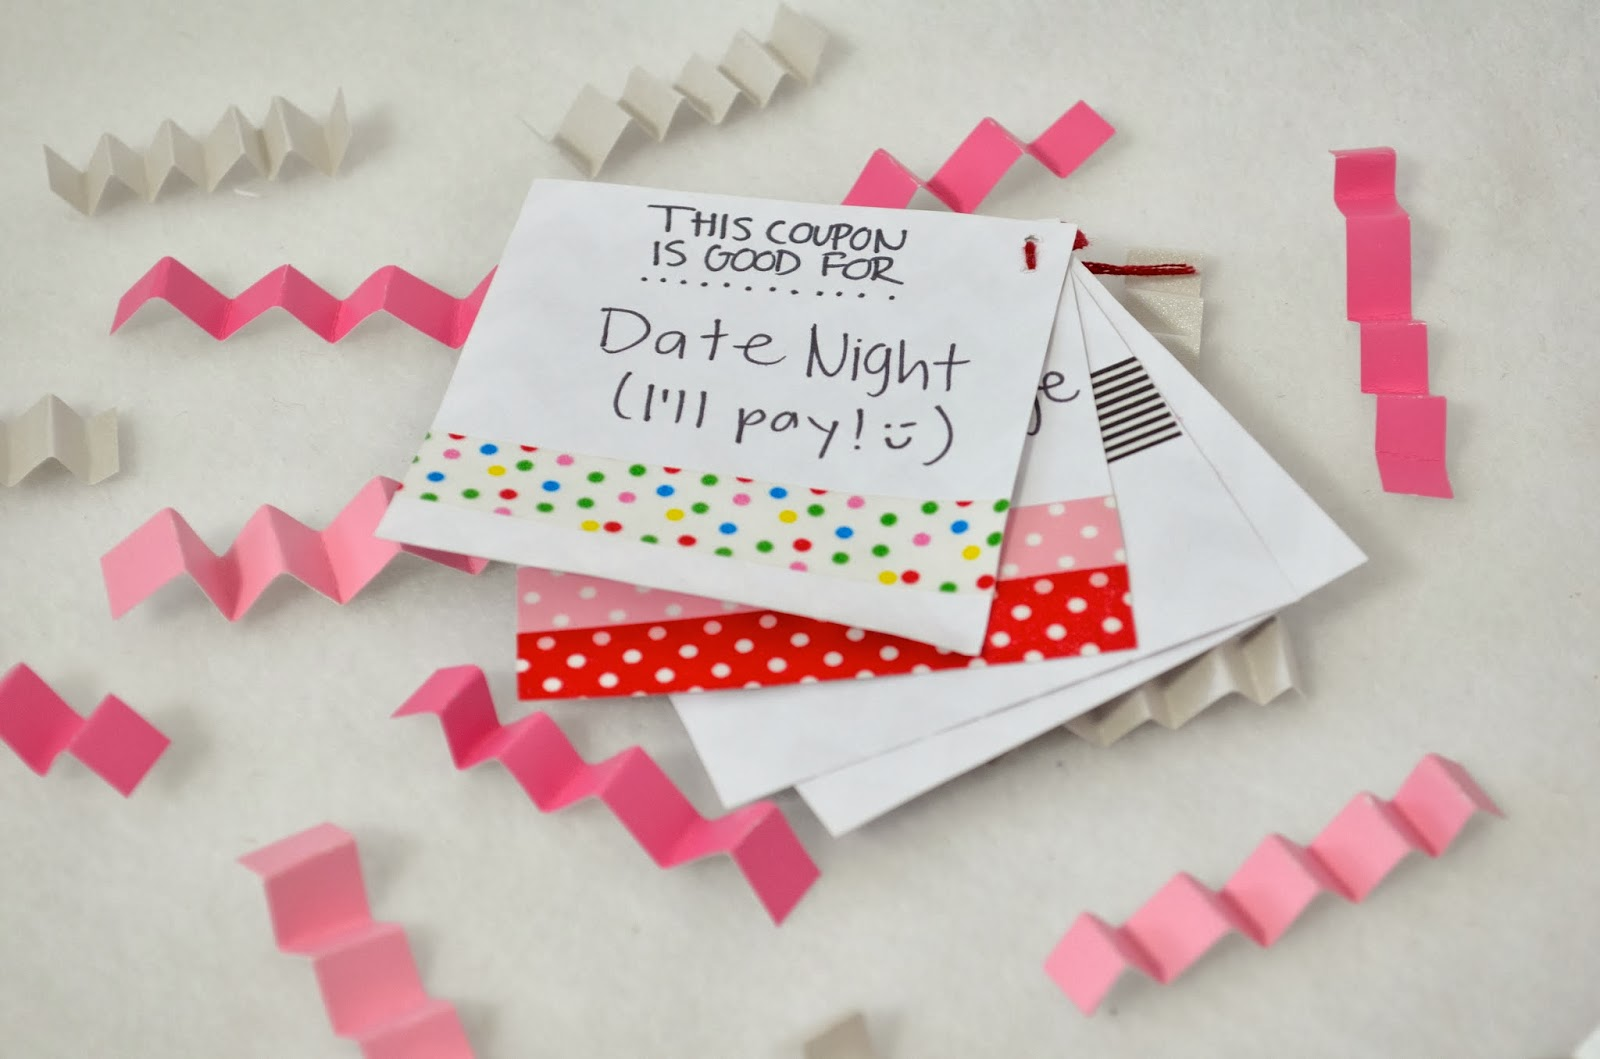 diy valentine's day, valentine's day diy, diy valentine's day gift, diy valentine's day gift for guys, valentine's day gift for guys, homemade valentine's day gift, love you to the moon and back, love you to the moon and back card, chevron coupon booklet